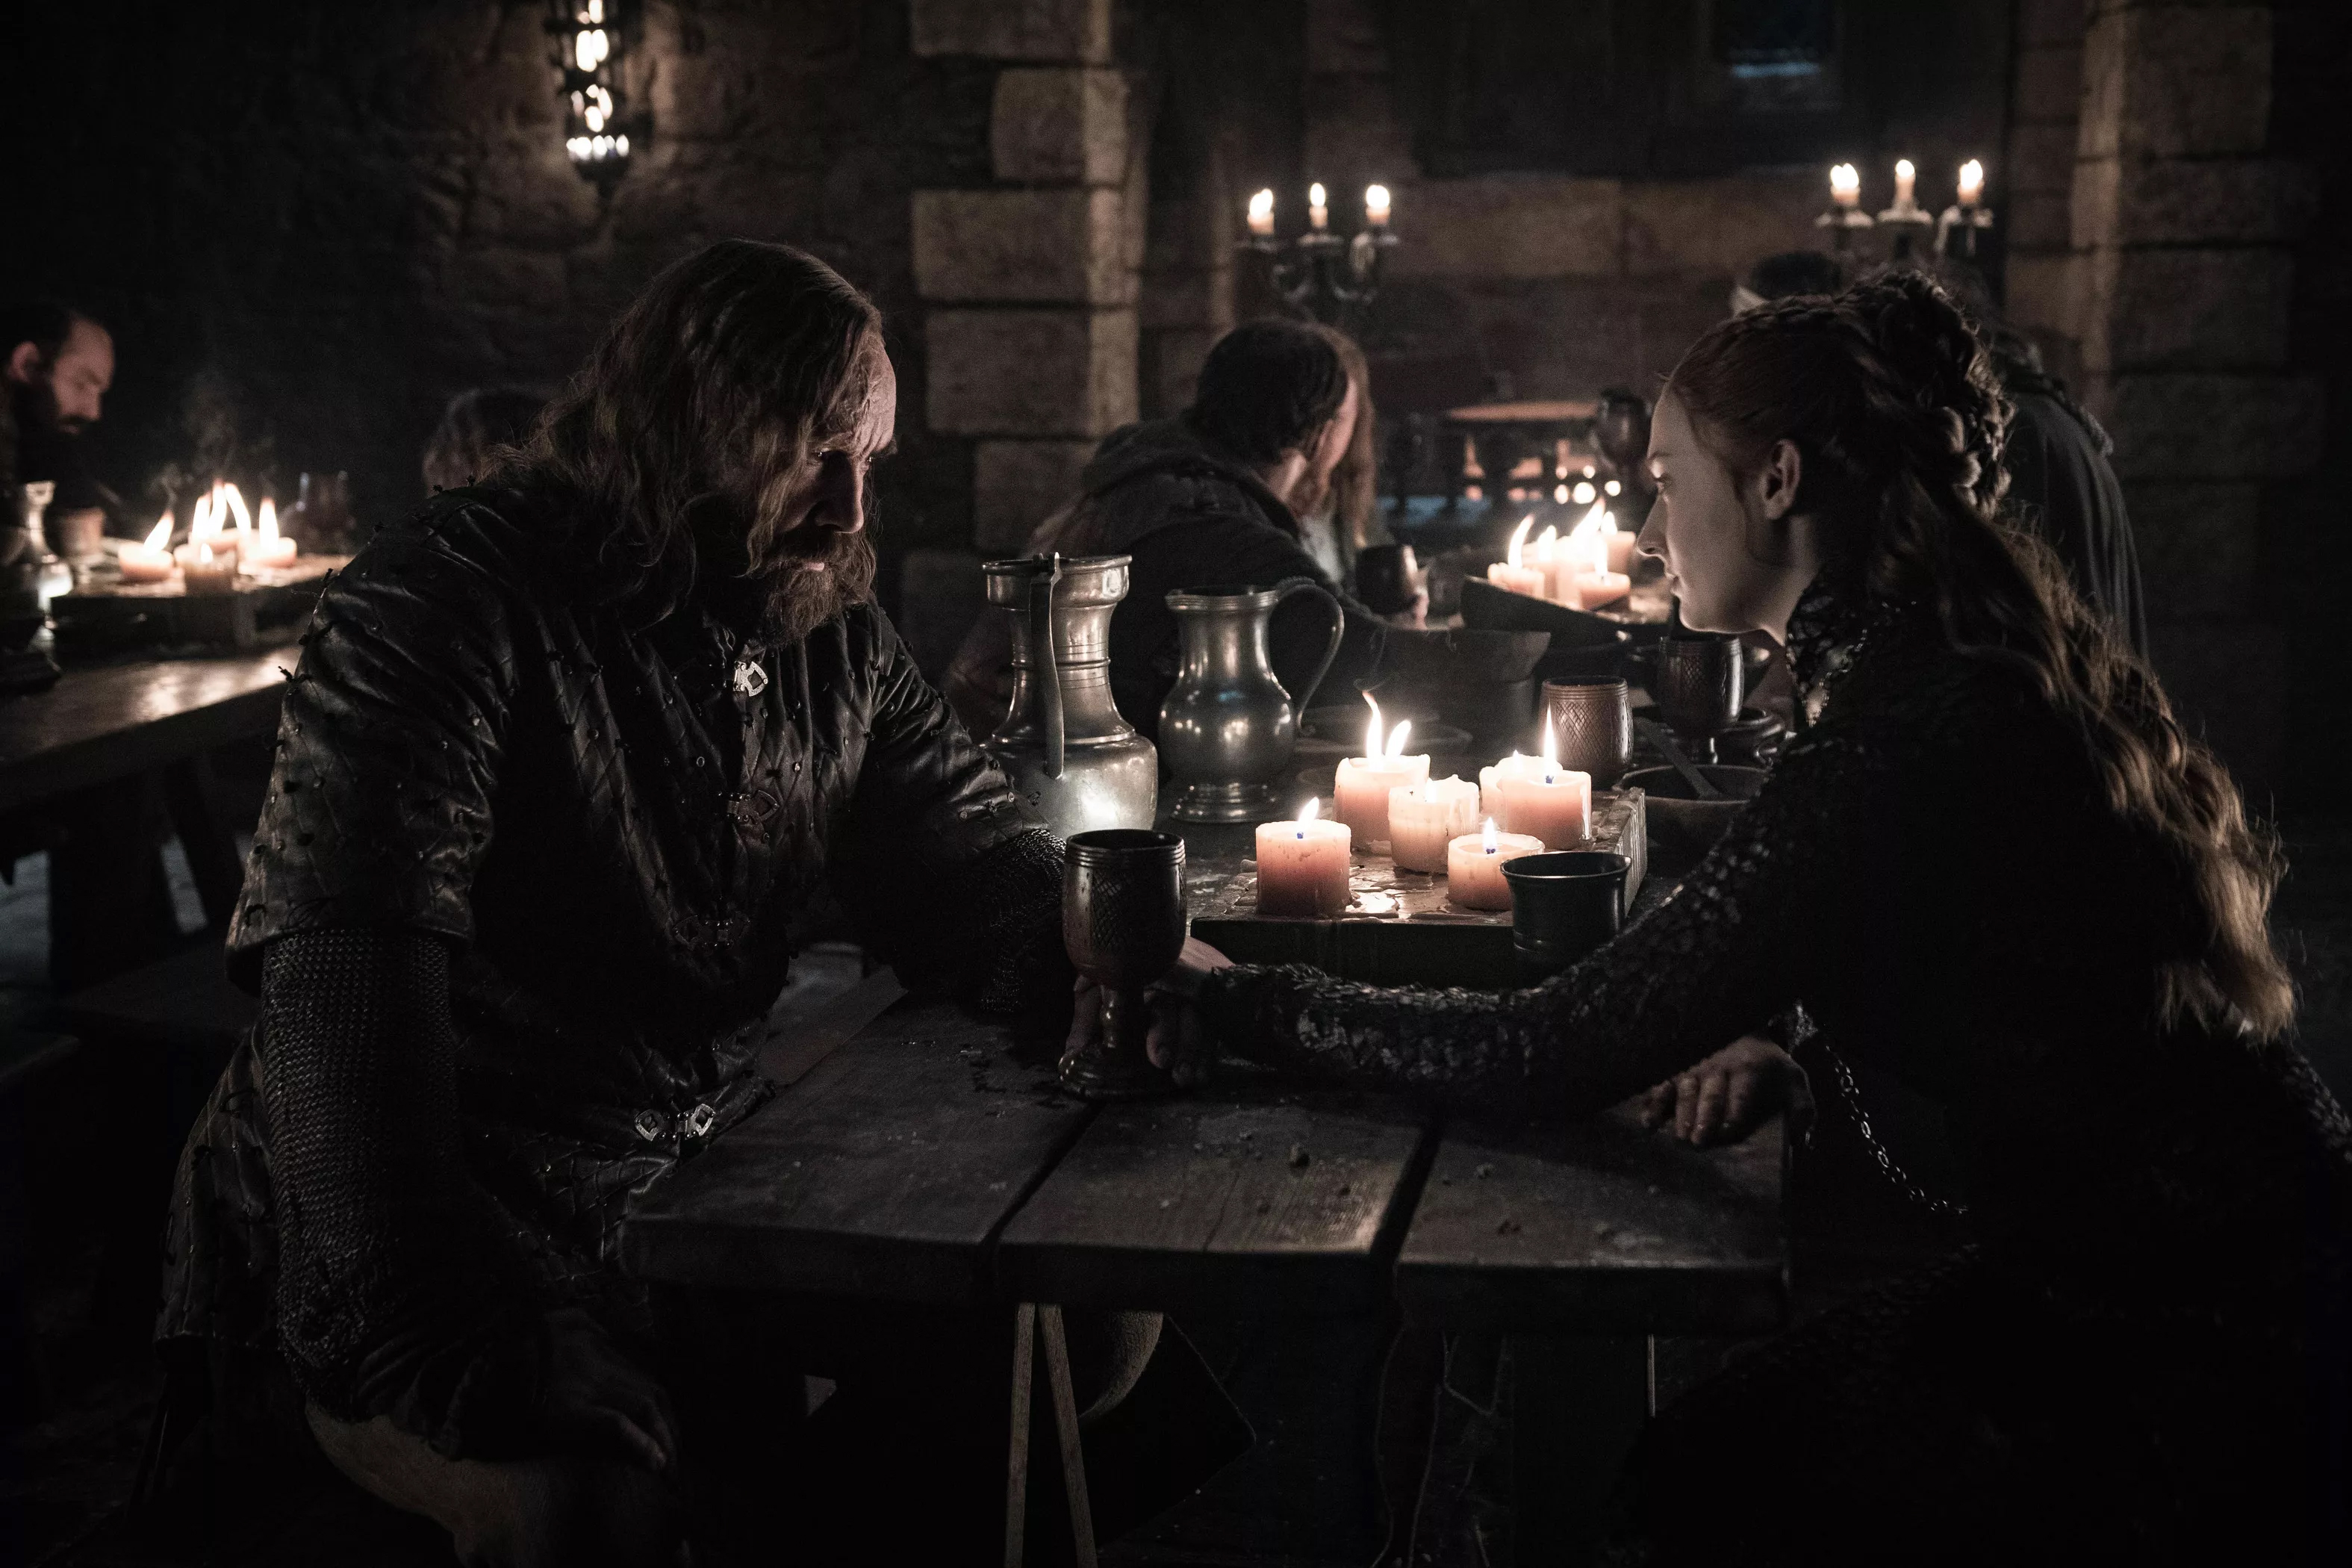 8x04 - The Last of the Starks - The Hound and Sansa